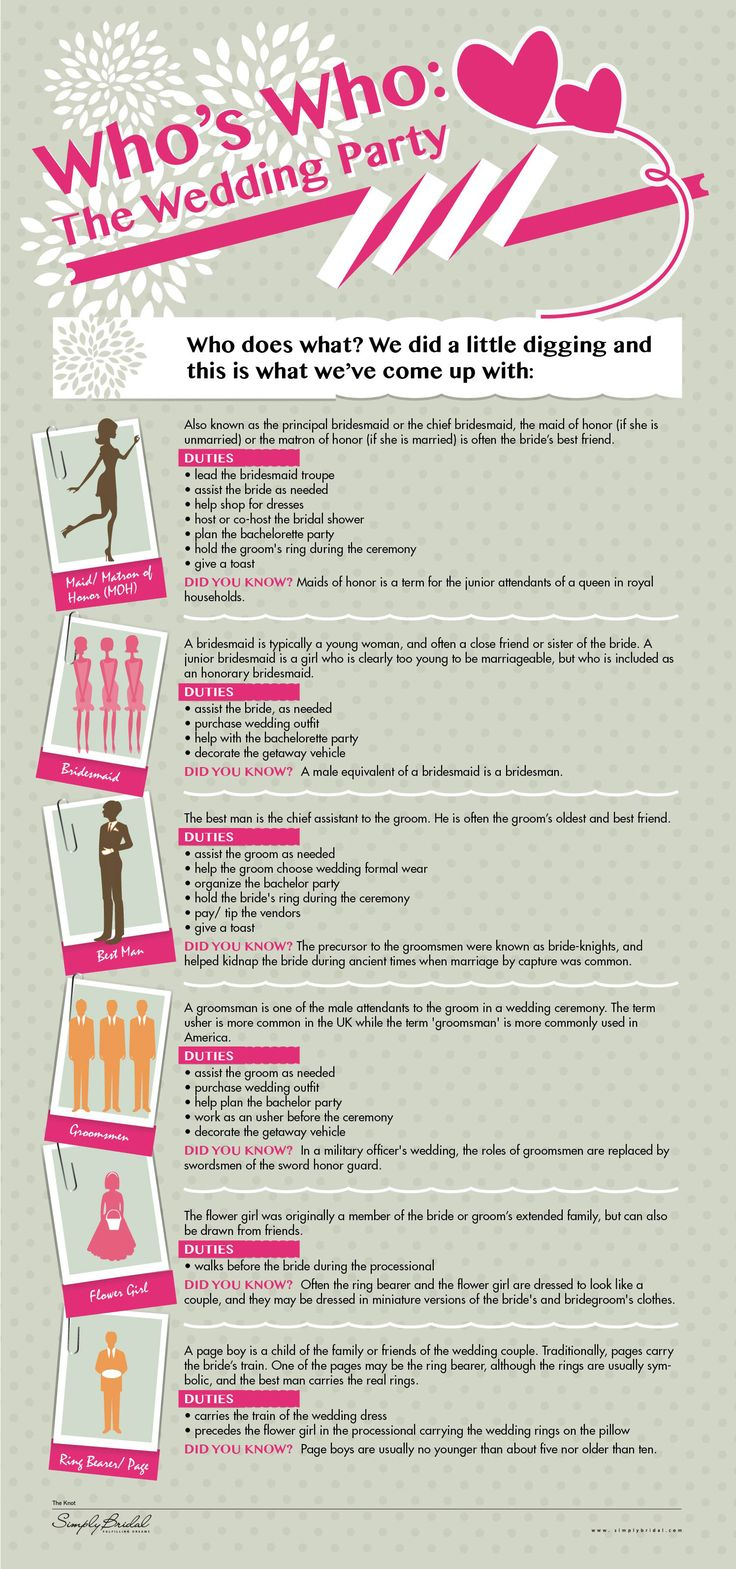 wedding party infographics   Who's Who: The Wedding Party [INFOGRAPHIC] – Infographic List